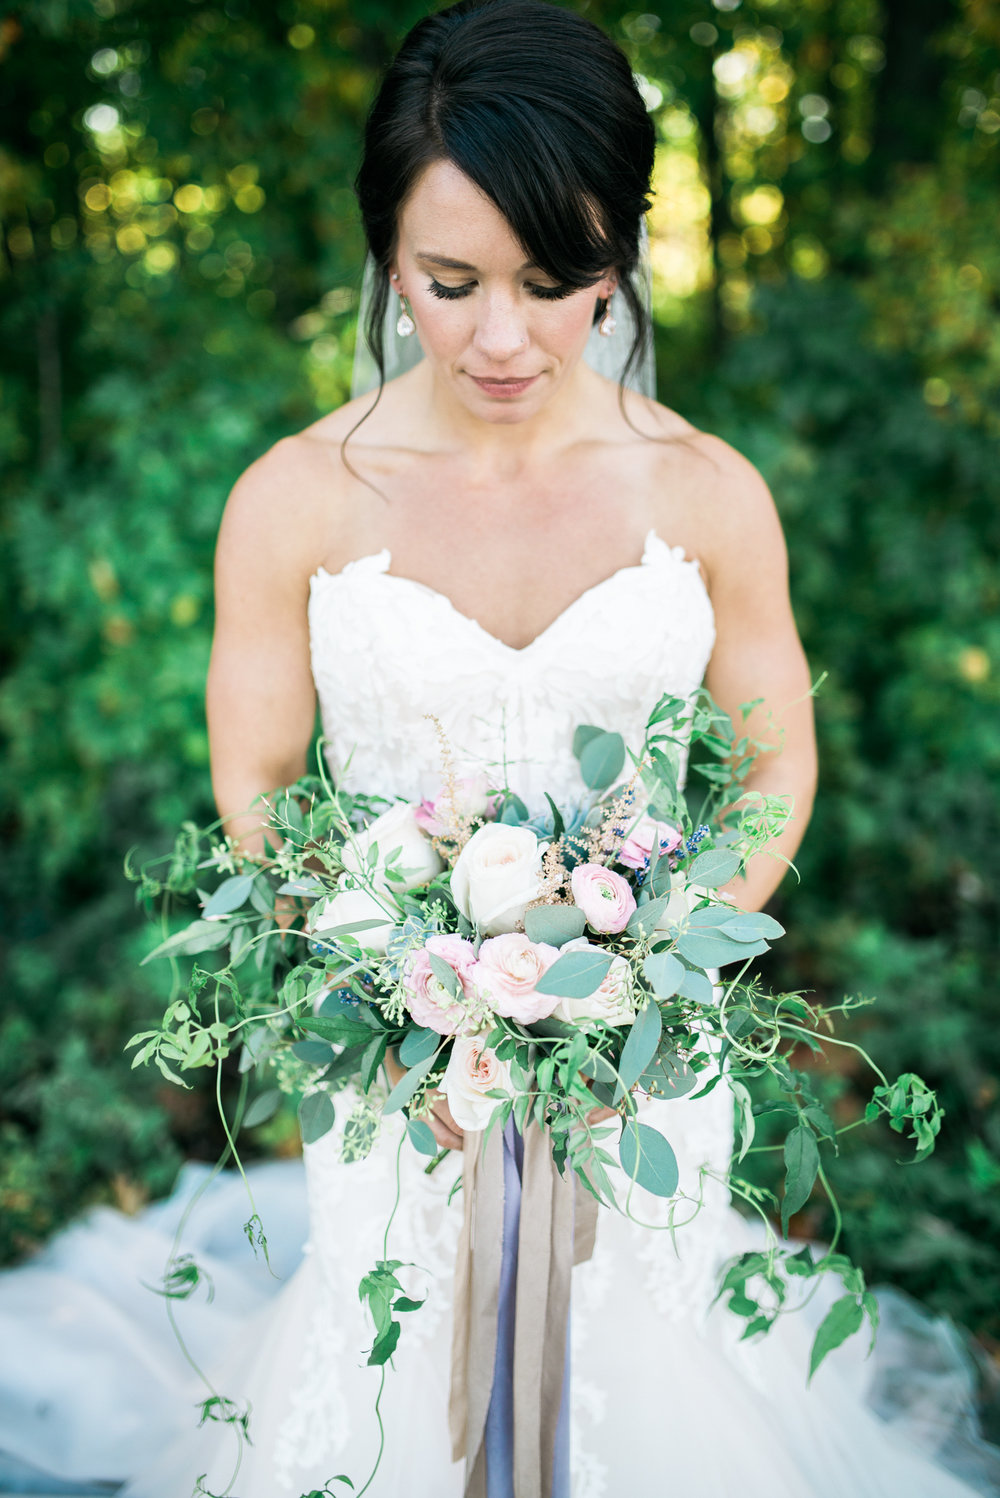 the bee's knees floral design decor minneapolis wedding flowers florist bridal florals brainerd lakes minneapols st paul twin cities st cloud duluth mankato mn florist whimsical florals wedding in the country barn wedding blush and greenery bride bouquet garden inspired loose flowing